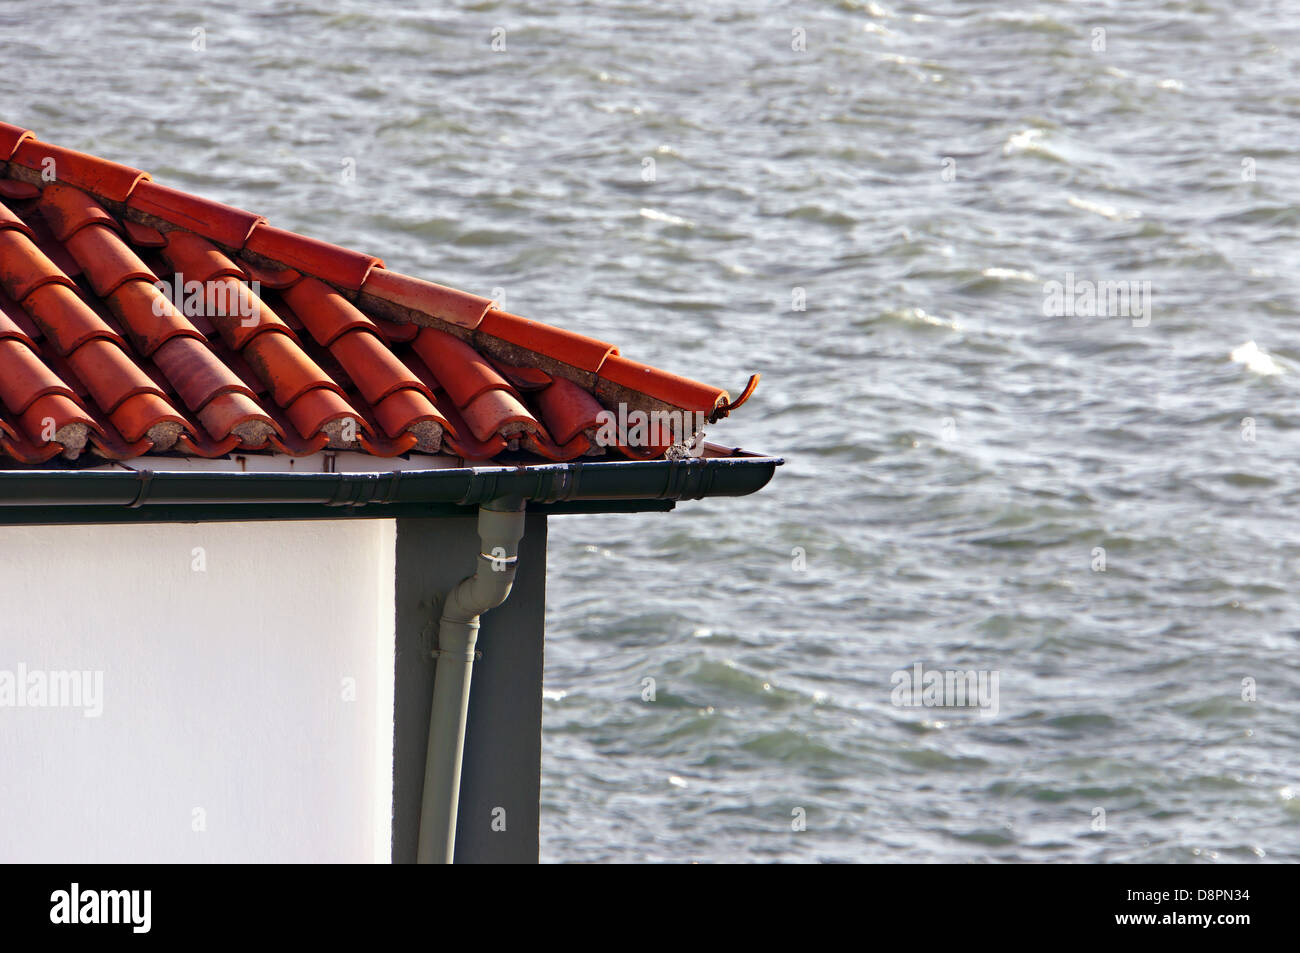 house roof near the sea. Photo taken in Algorta, Getxo, Basque Country, Spain. - Stock Image